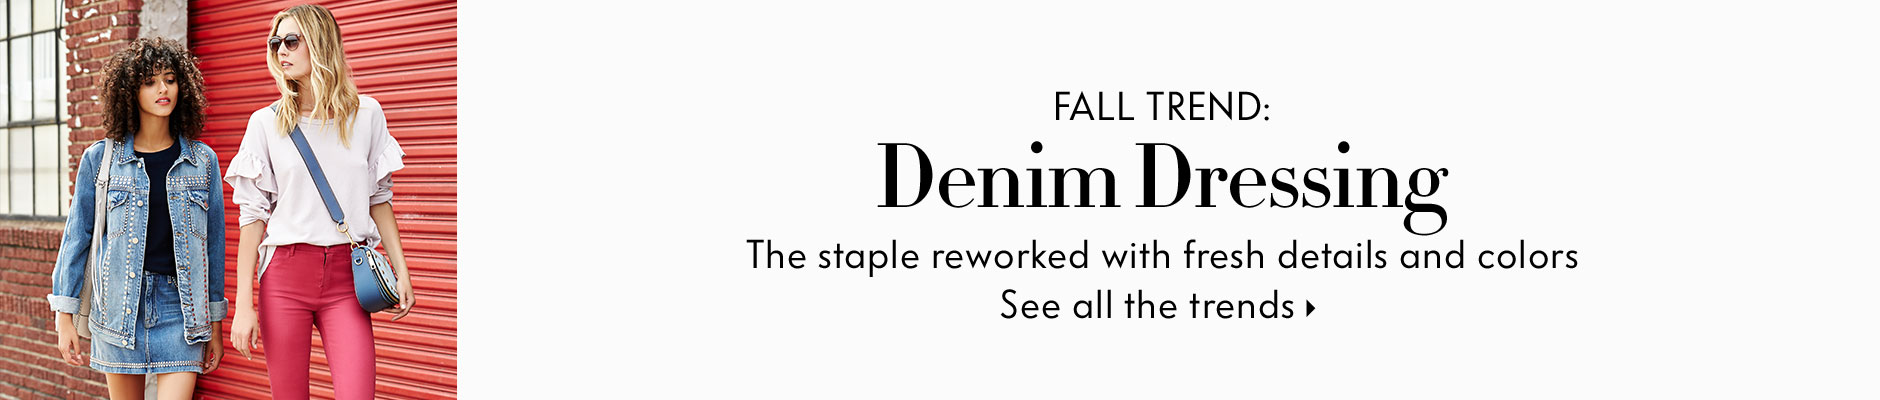 Fall Trend: Denim Dressing - The staple reworked with fresh details and colors